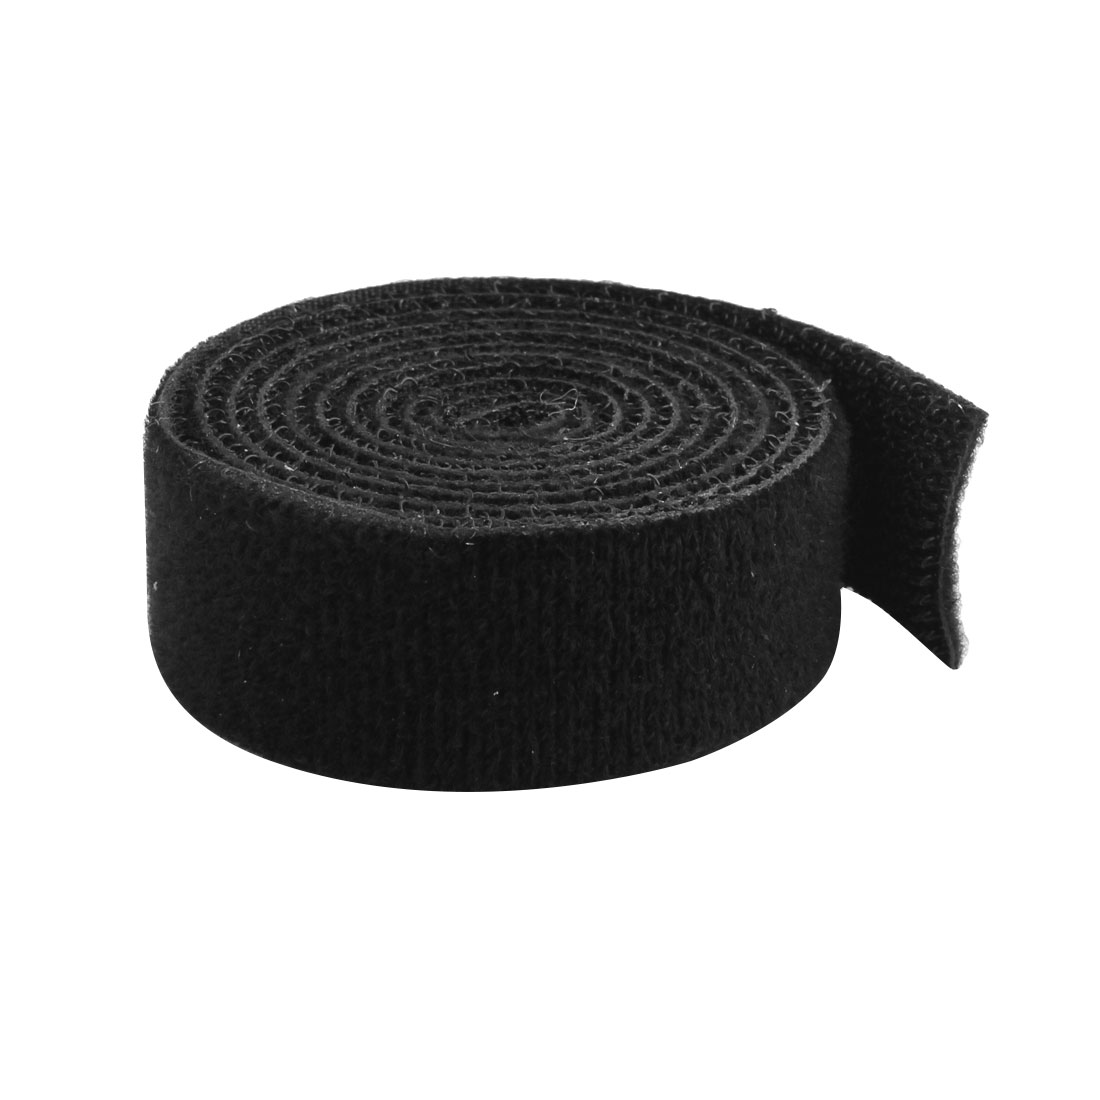 Self Attaching Back Hook Loop Fastening Tape Strip Black 1M Long 22mm Width